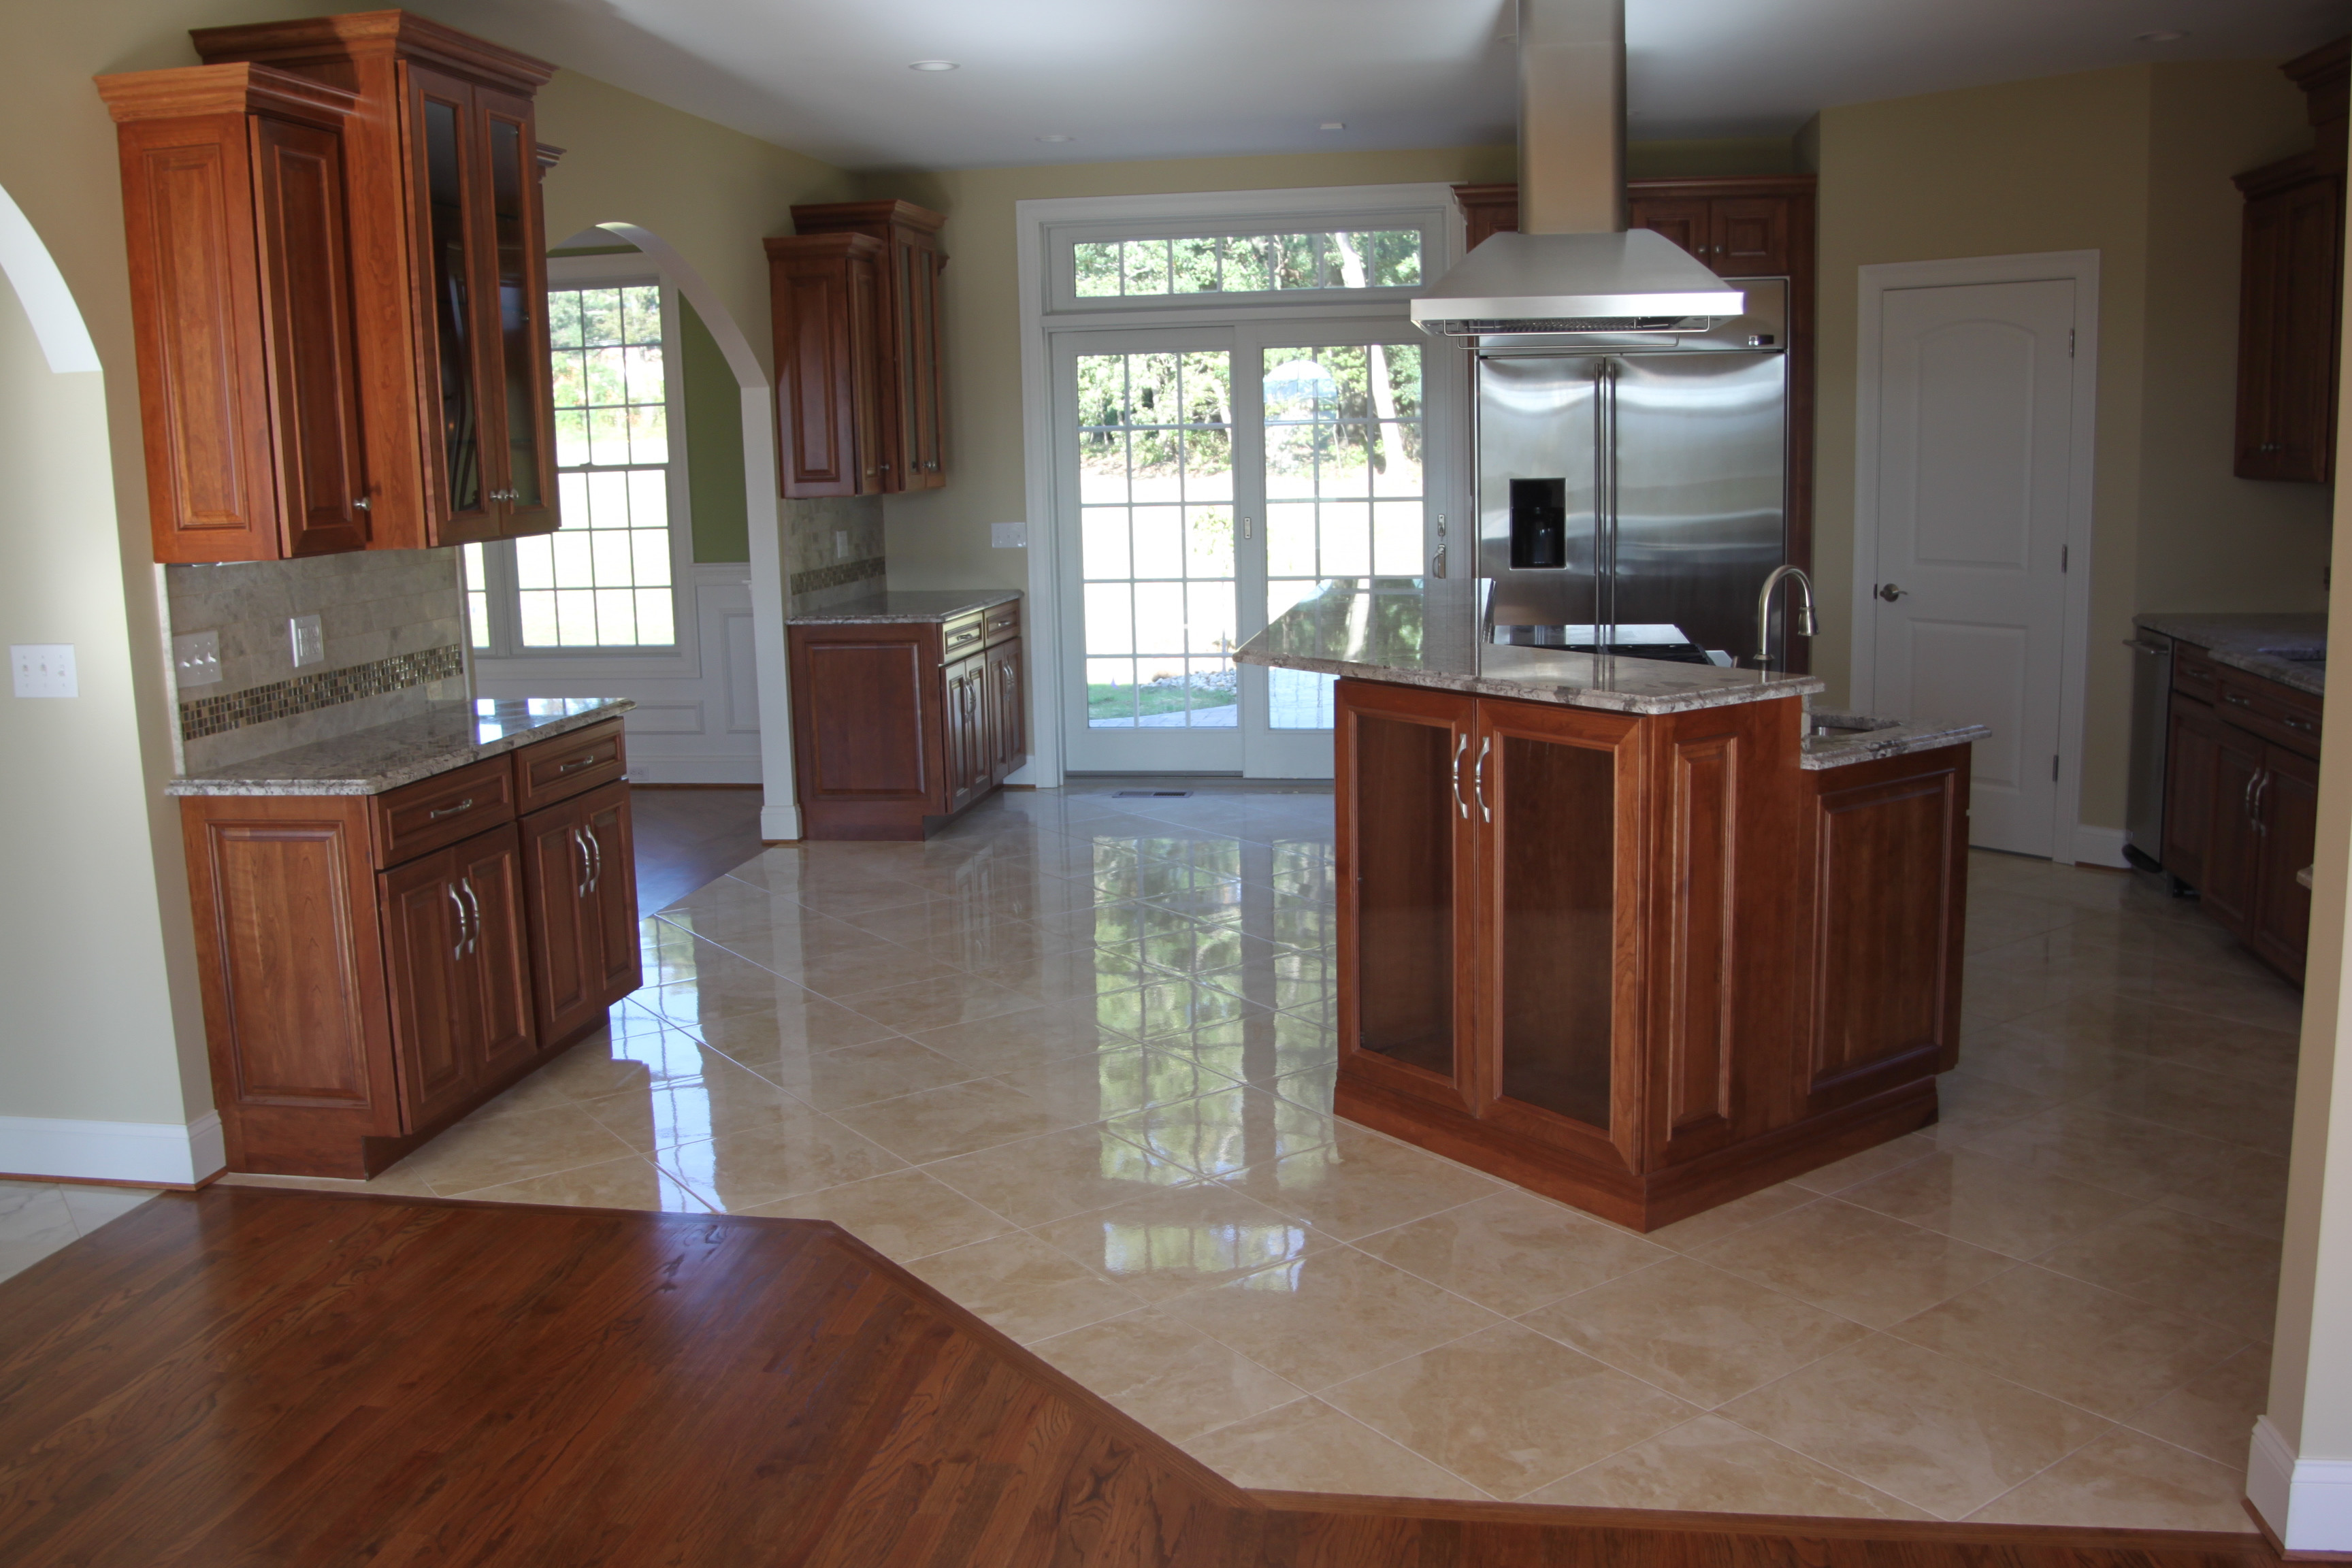 cheap hardwood flooring alternatives of should your flooring match your kitchen cabinets or countertops intended for floor wall tile